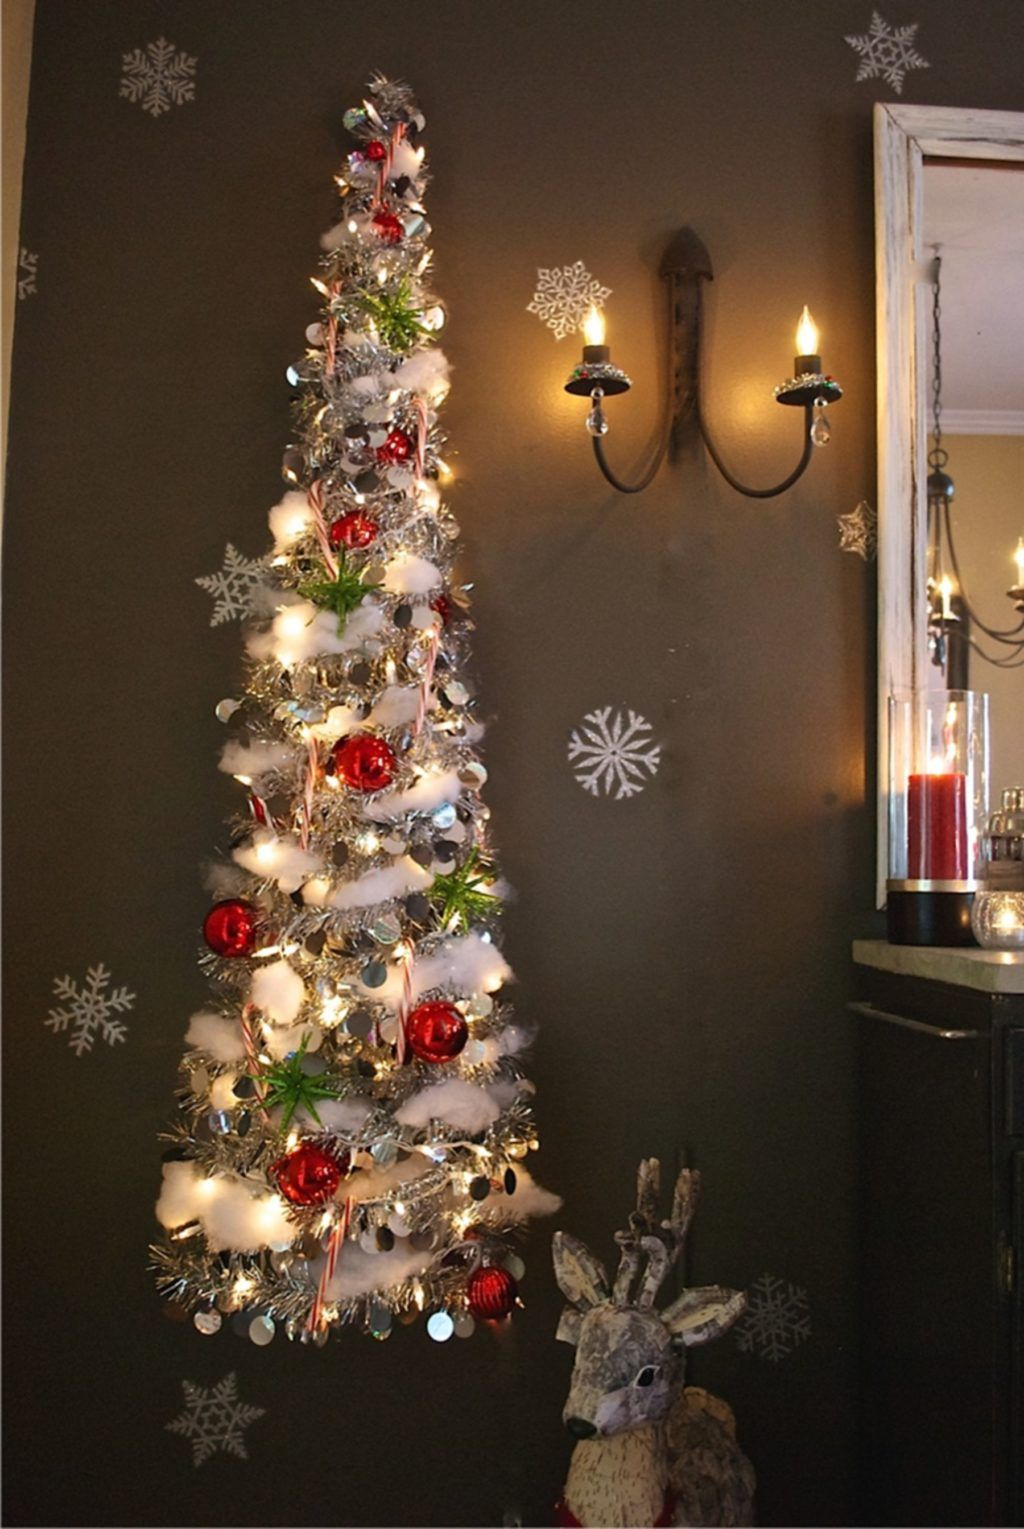 20 Amazing Christmas Decorations For Your Home Interior